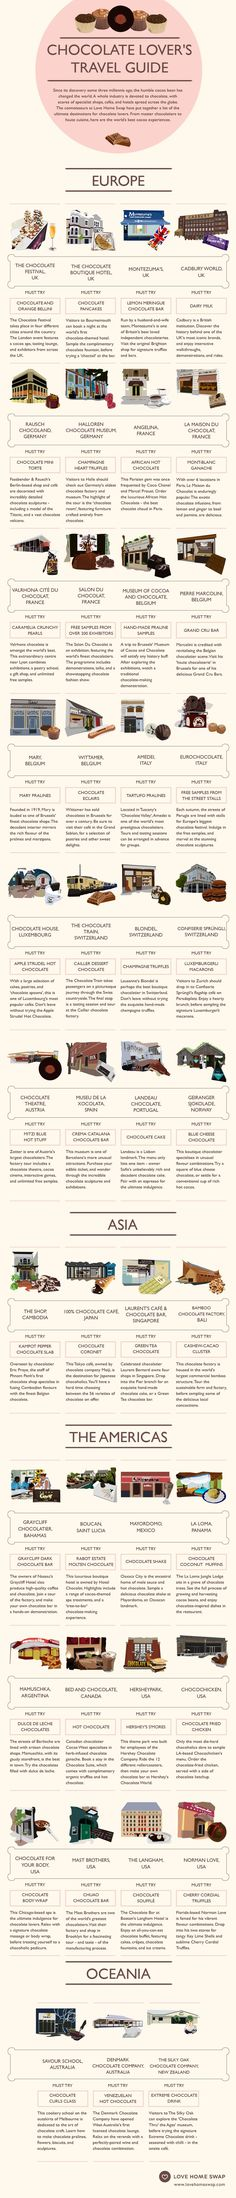 Discover The Chocolate Lovers Travel Guide - Love to travel? Love chocolate? From munching down s'mores in the US to indulging in champagne truffles in Switzerland, this cool infographic reveals the world's top destinations for chocoholics.